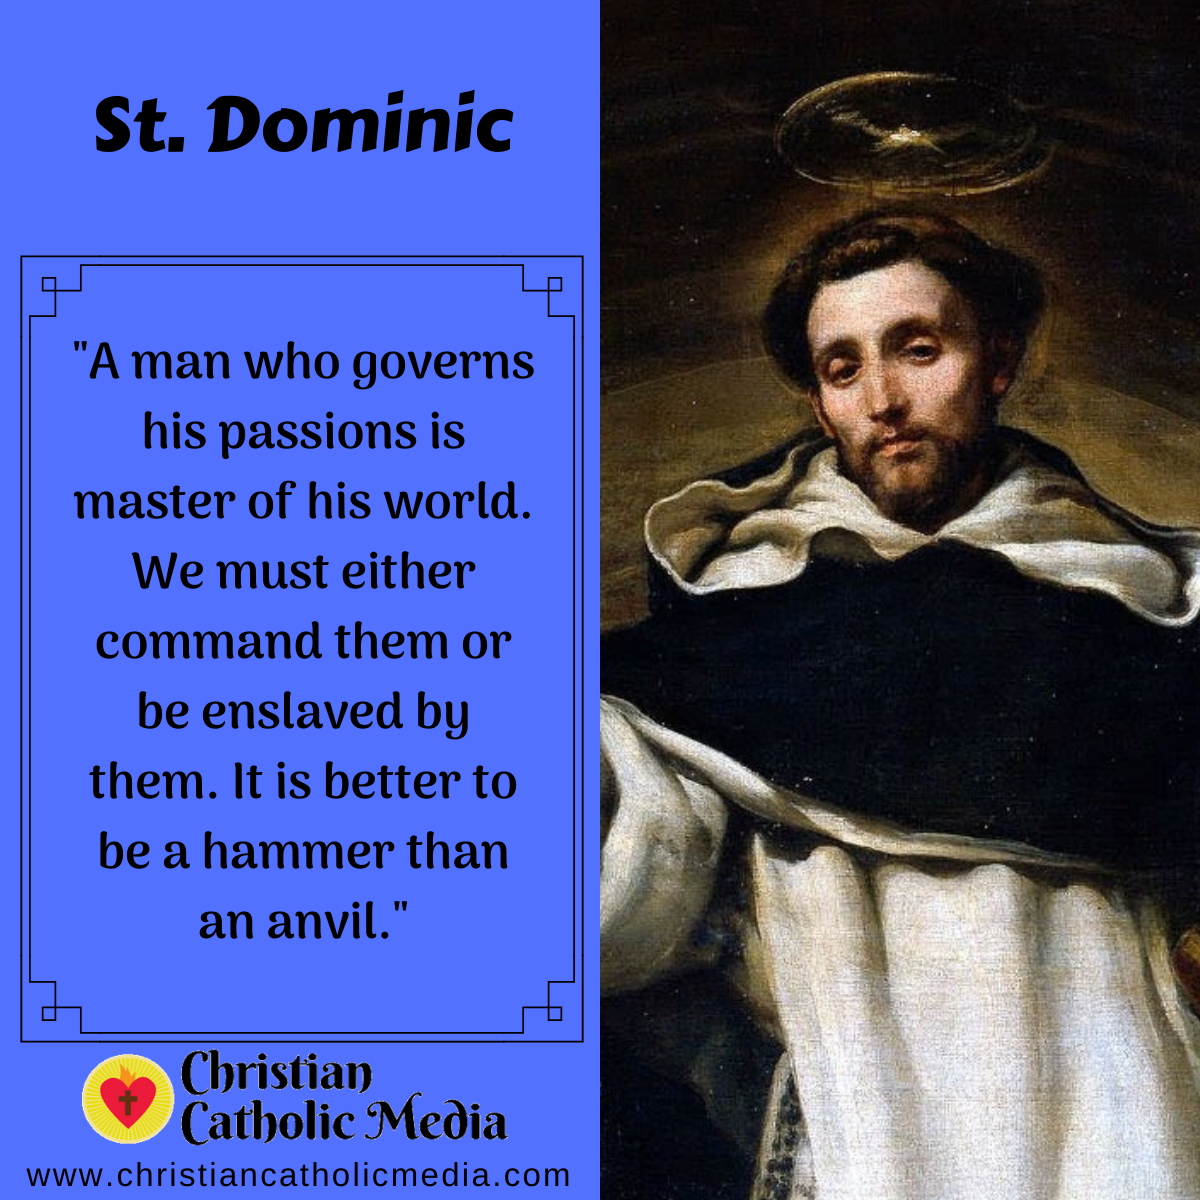 St. Dominic - Saturday August 8, 2020